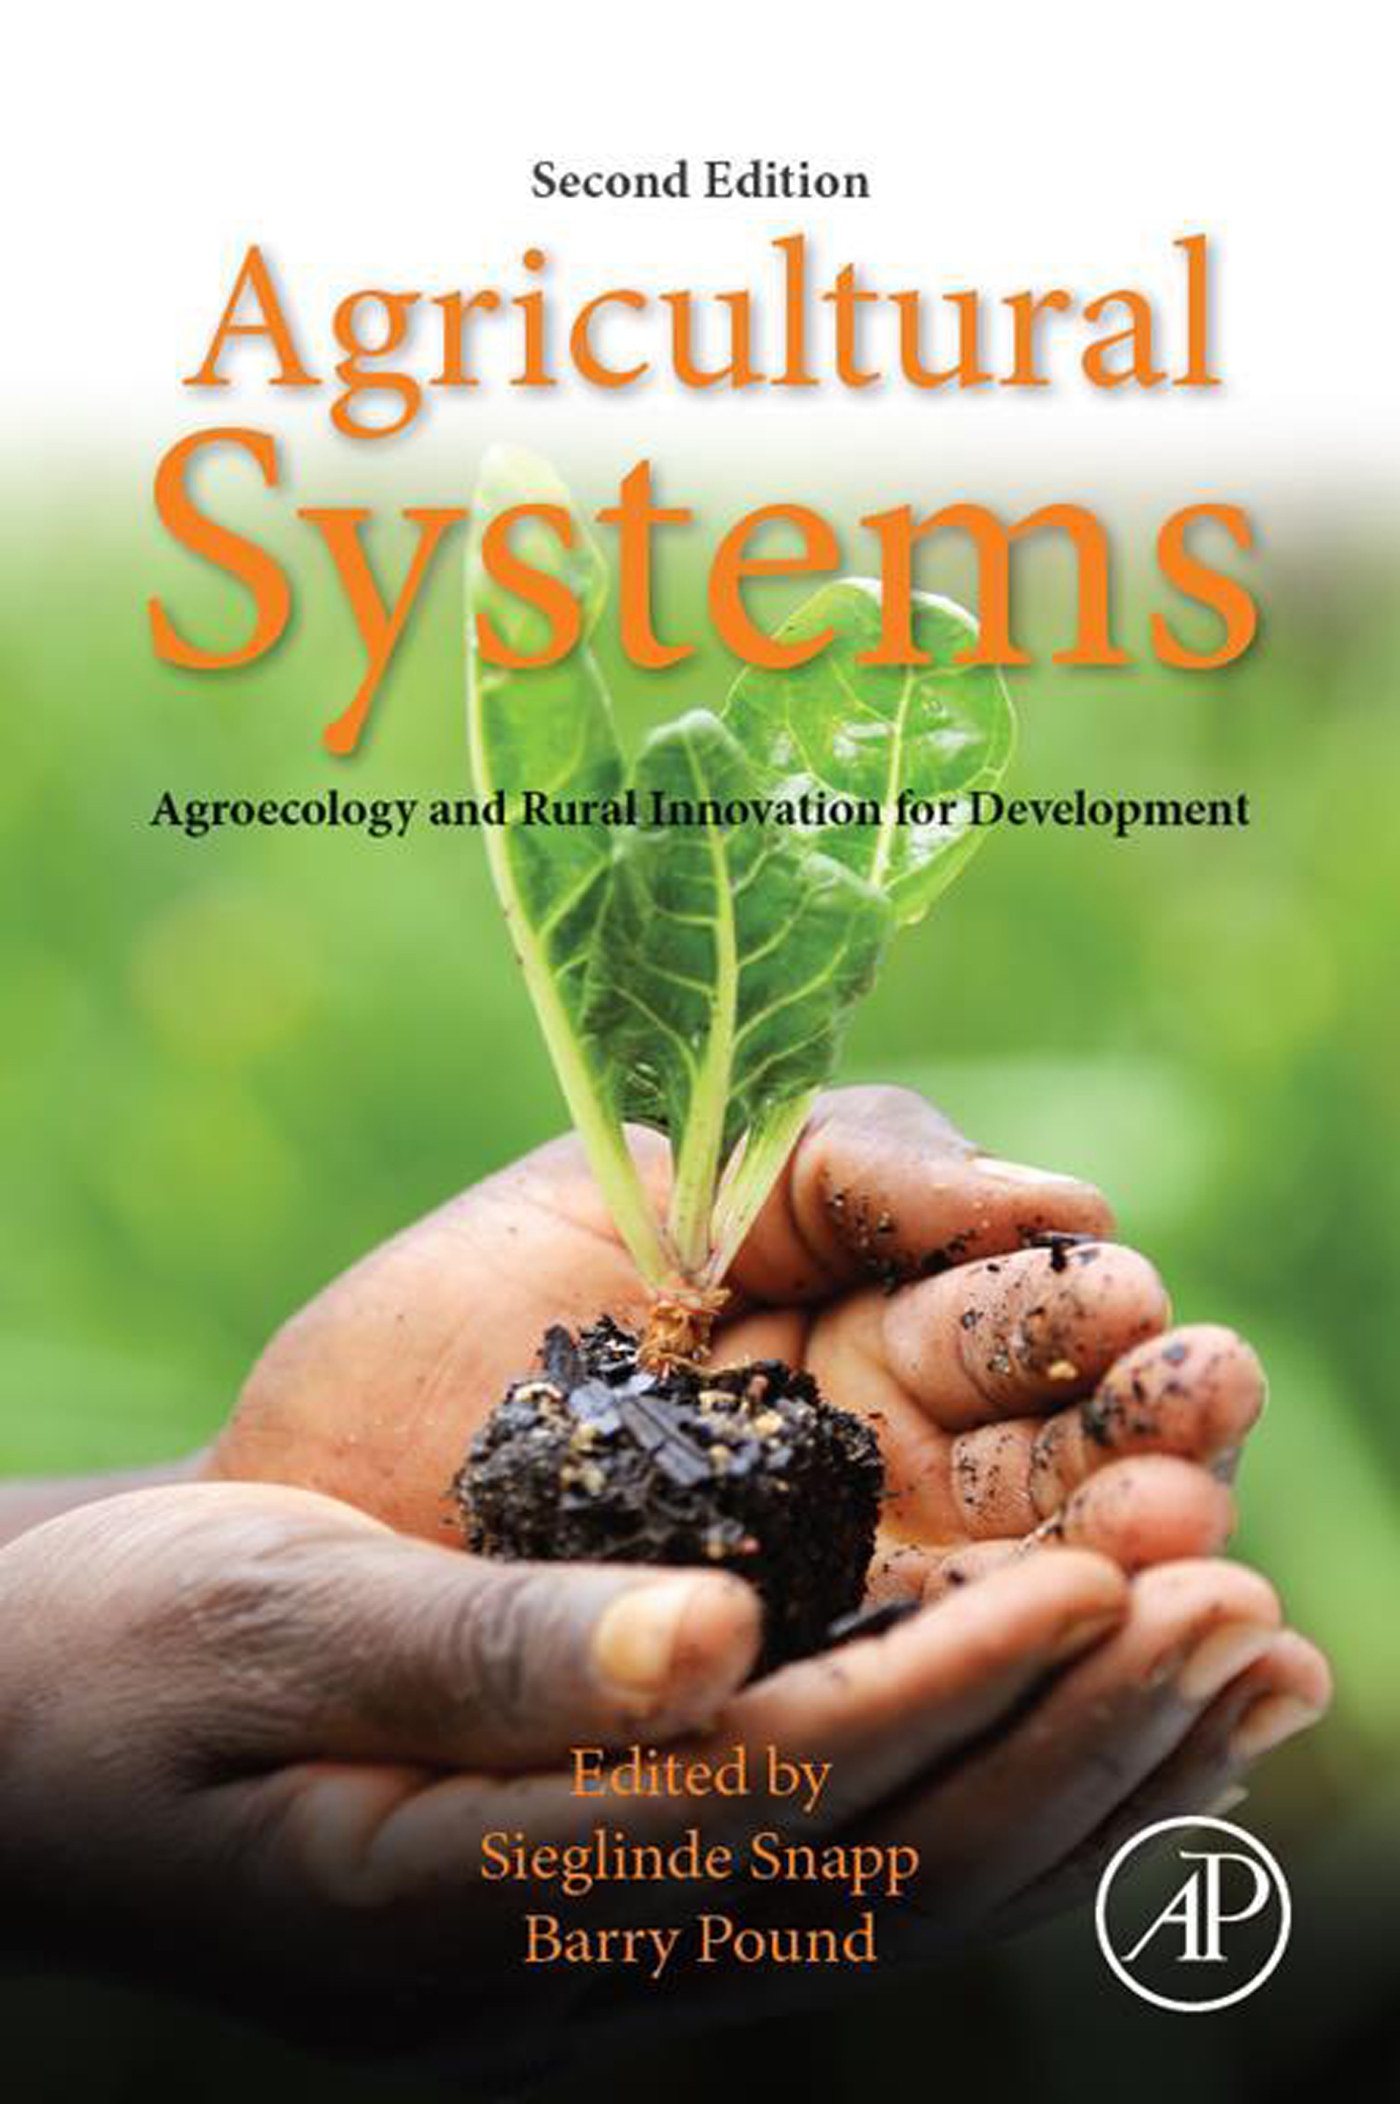 Download Ebook Agricultural Systems: Agroecology and Rural Innovation for Development (2nd ed.) by Sieglinde Snapp Pdf